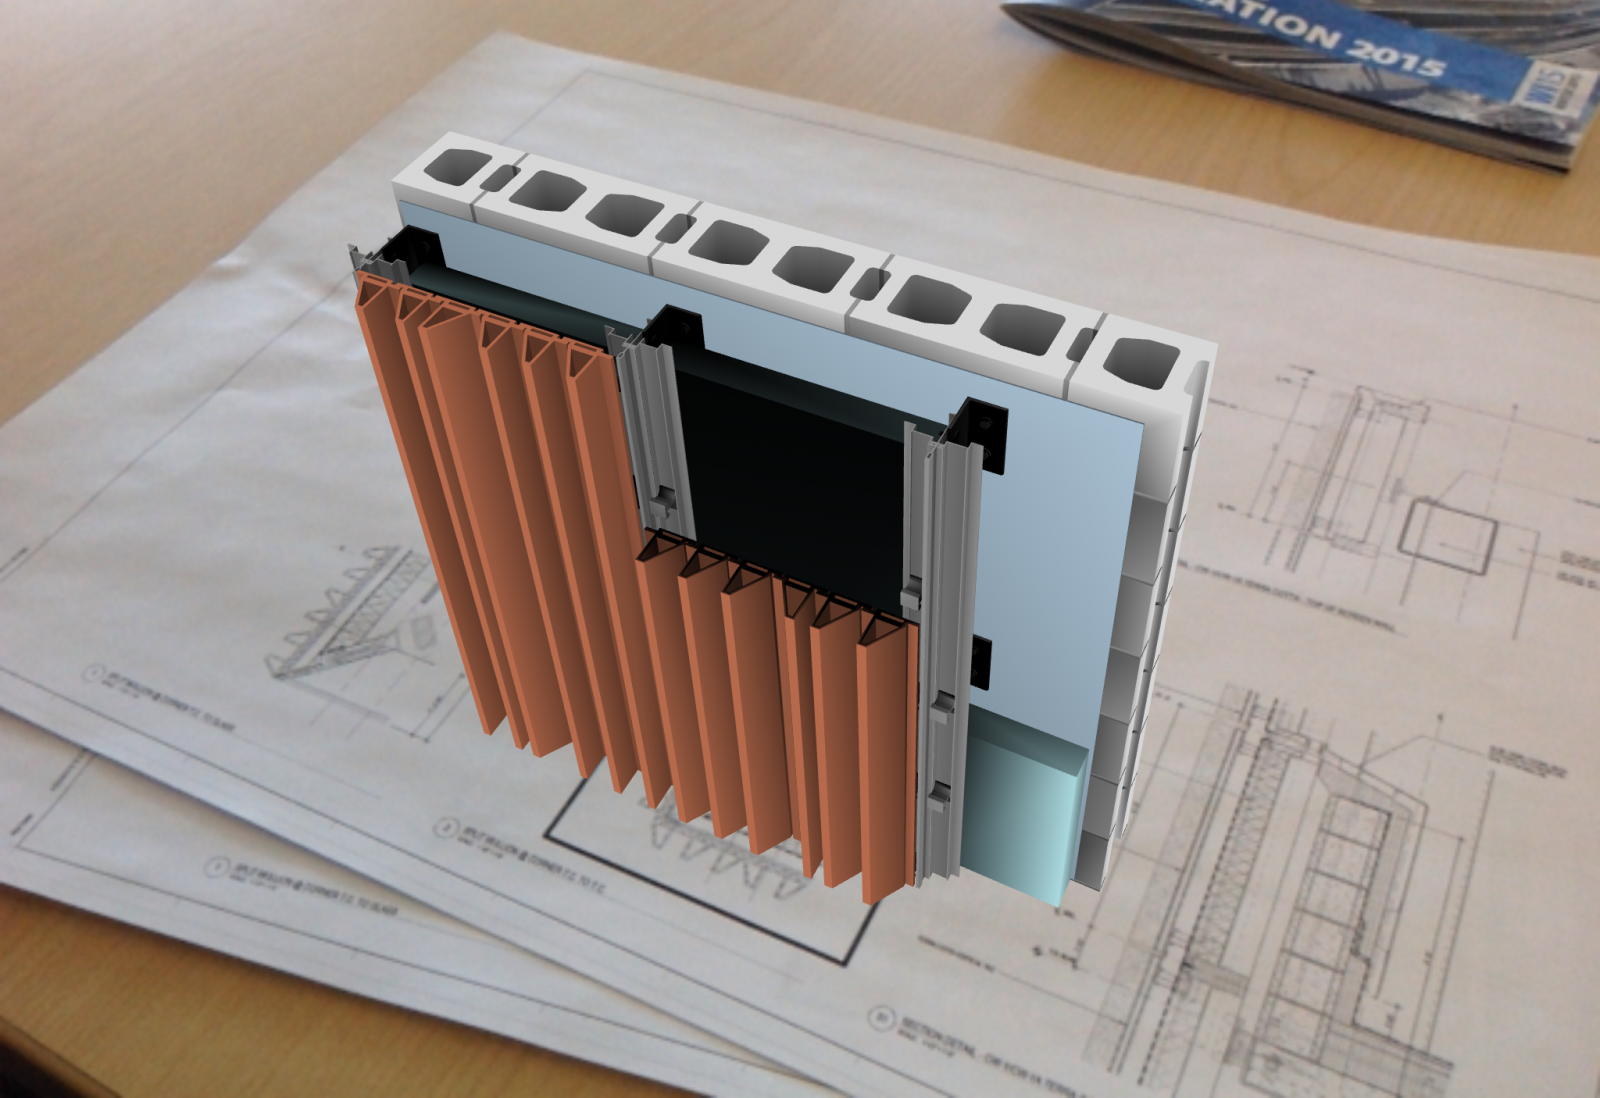 Virtual mock-up of a construction detail for viewing in an augmented reality environment.